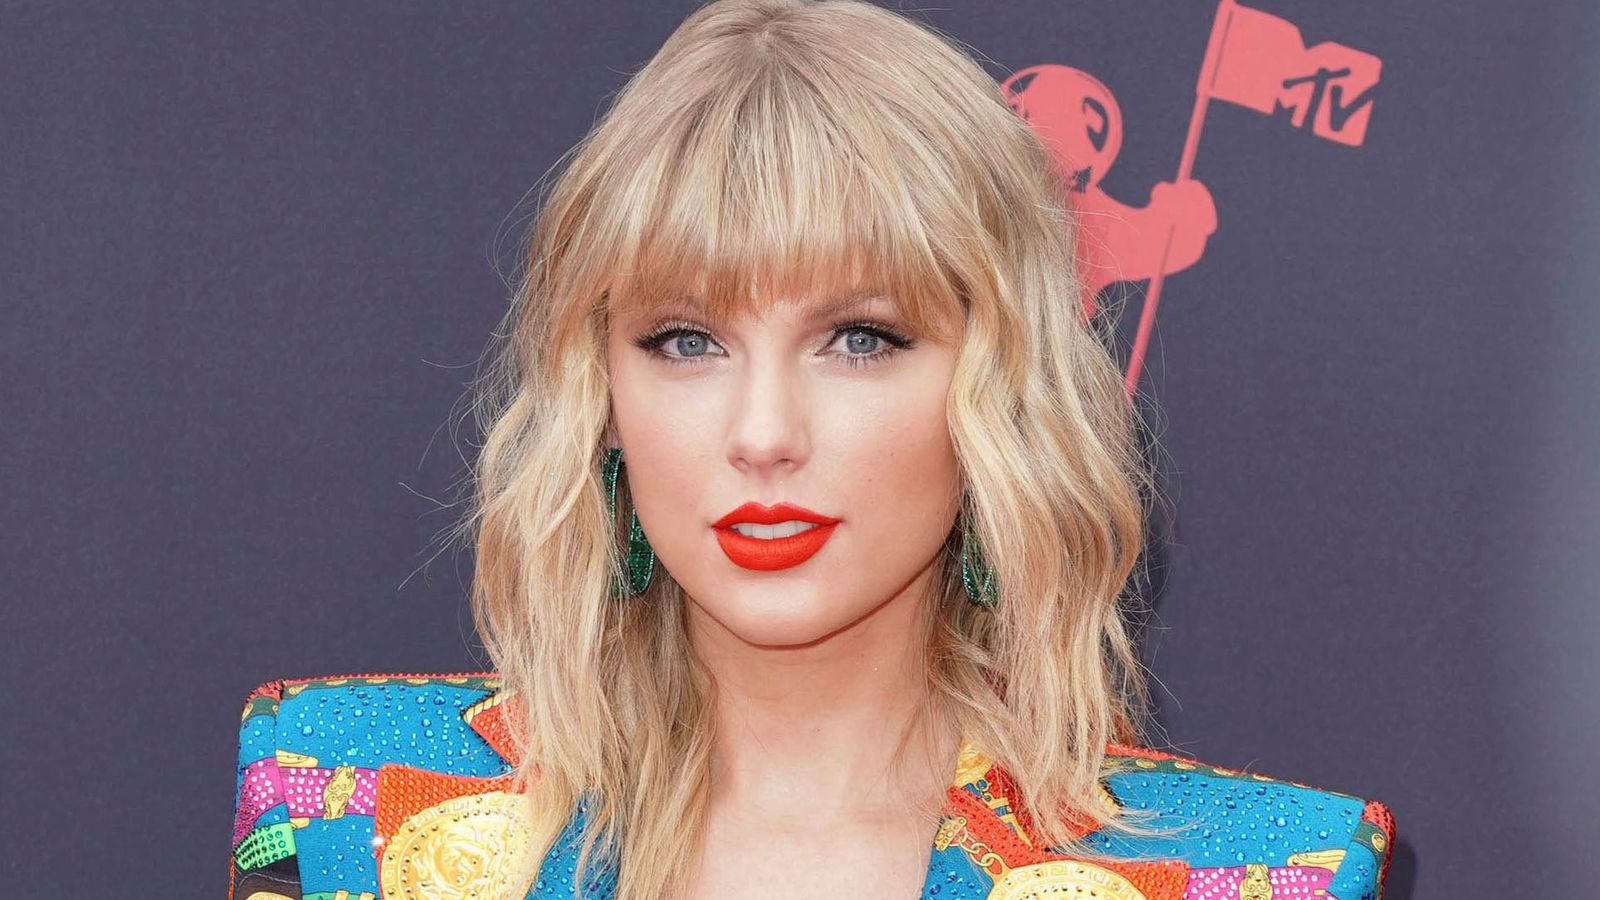 'Taylor's model': Swift re-records her Fearless album and divulges cryptic message to followers